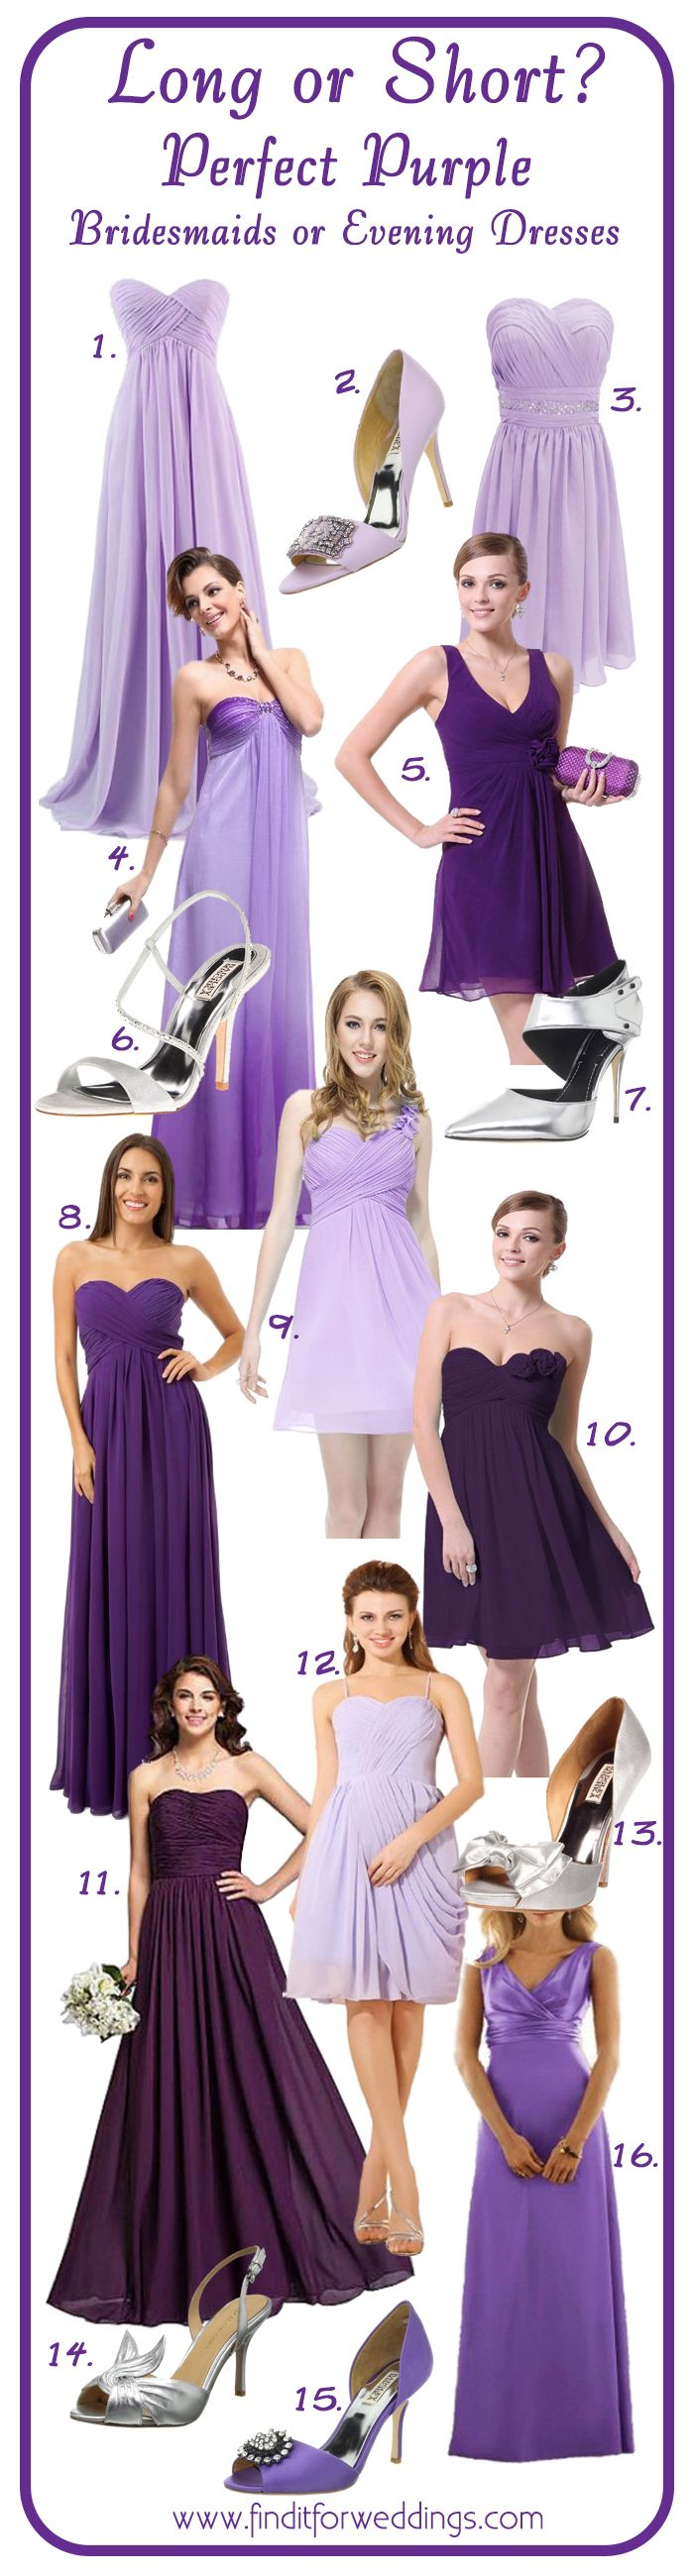 Purple Bridesmaid Dresses And Shoes To Match Www Finditforwedd Designer Wedding Shoemallfashion